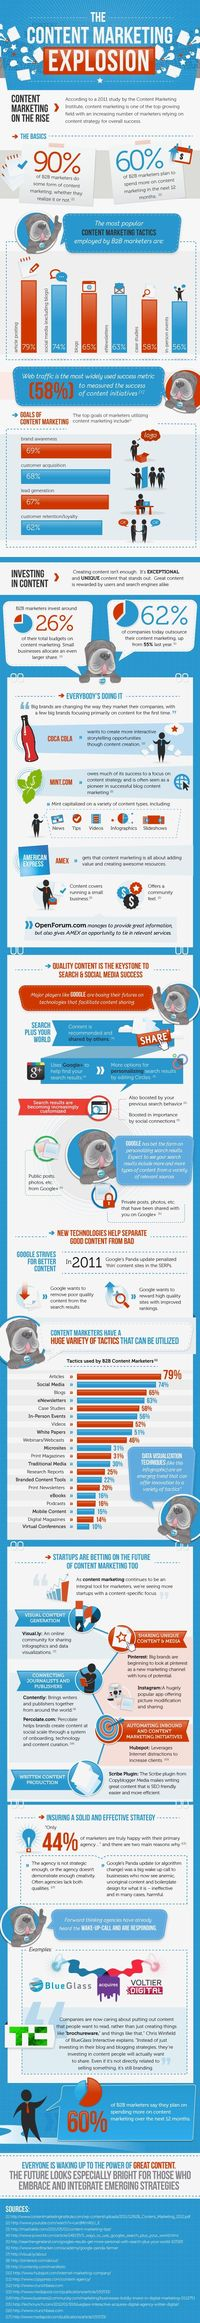 [INFOGRAPHIC] Content Marketing Stats, Benefits, and Facts